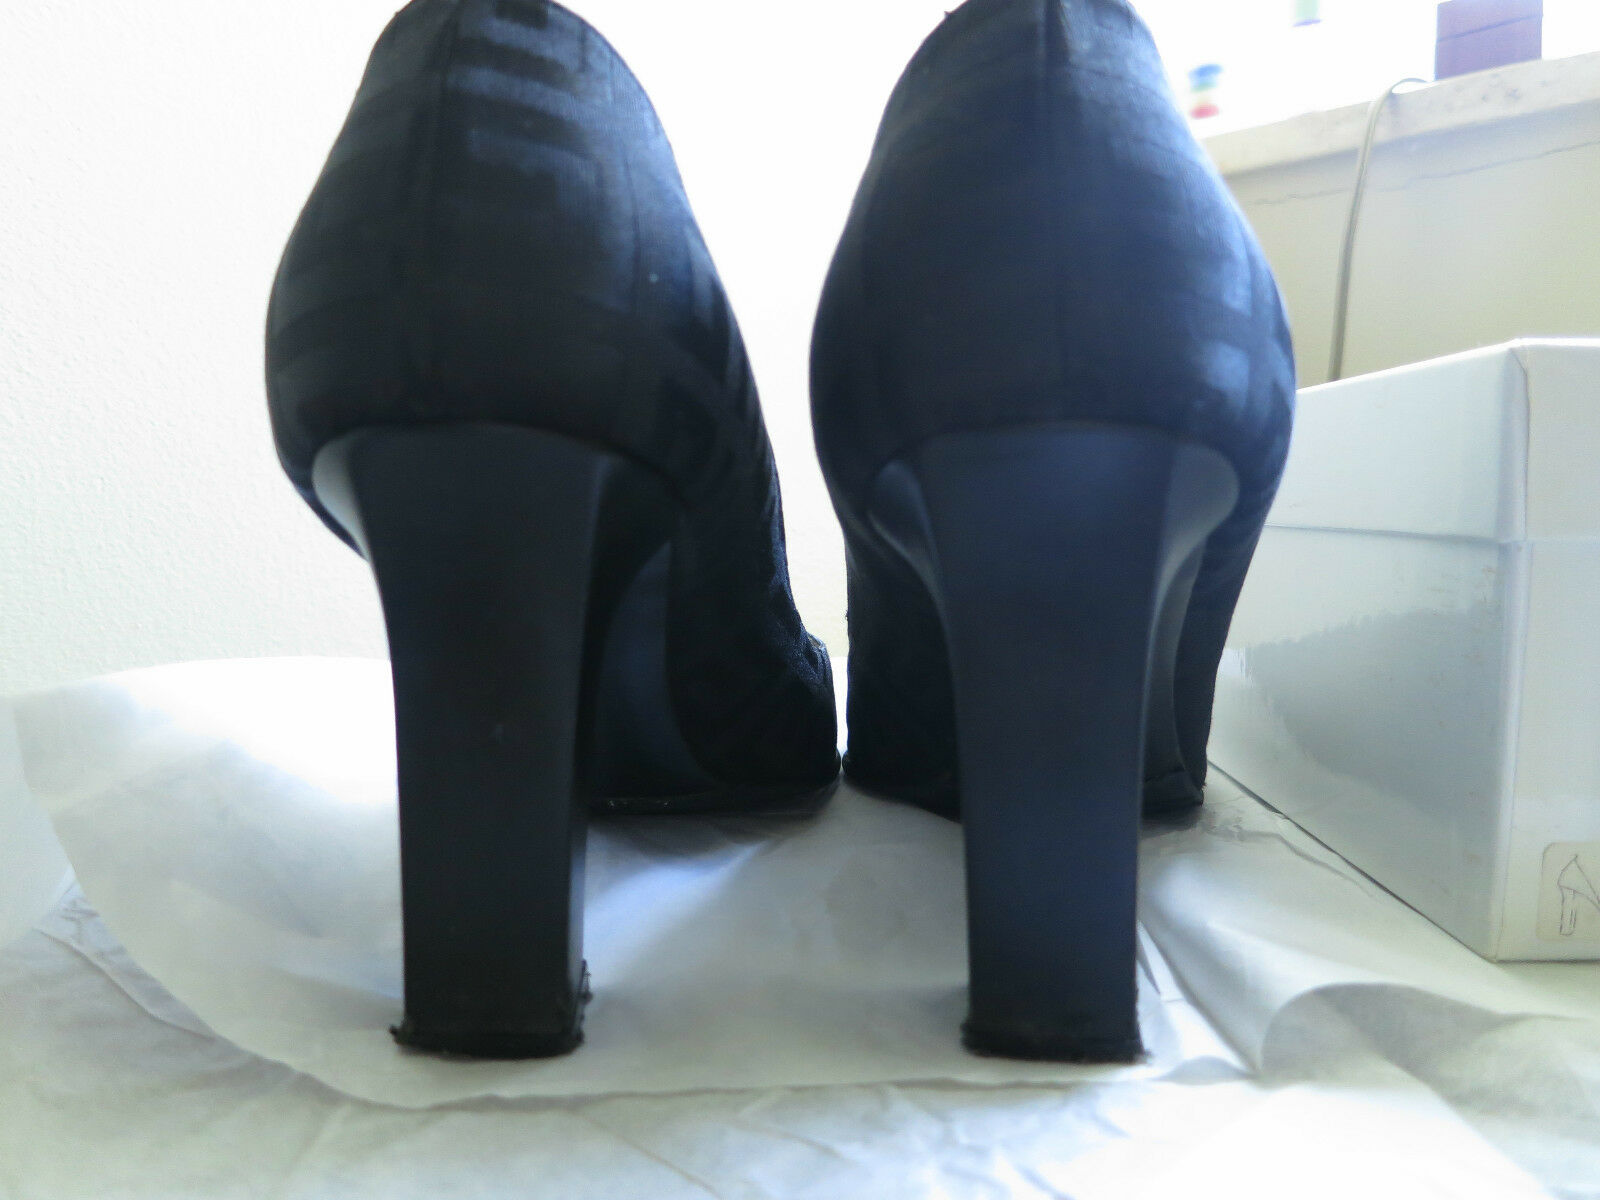 Selten! Givenchy Pumps Schuhe Schuhes Stoff Logo Gr. 41 sehr bequem OVP NP